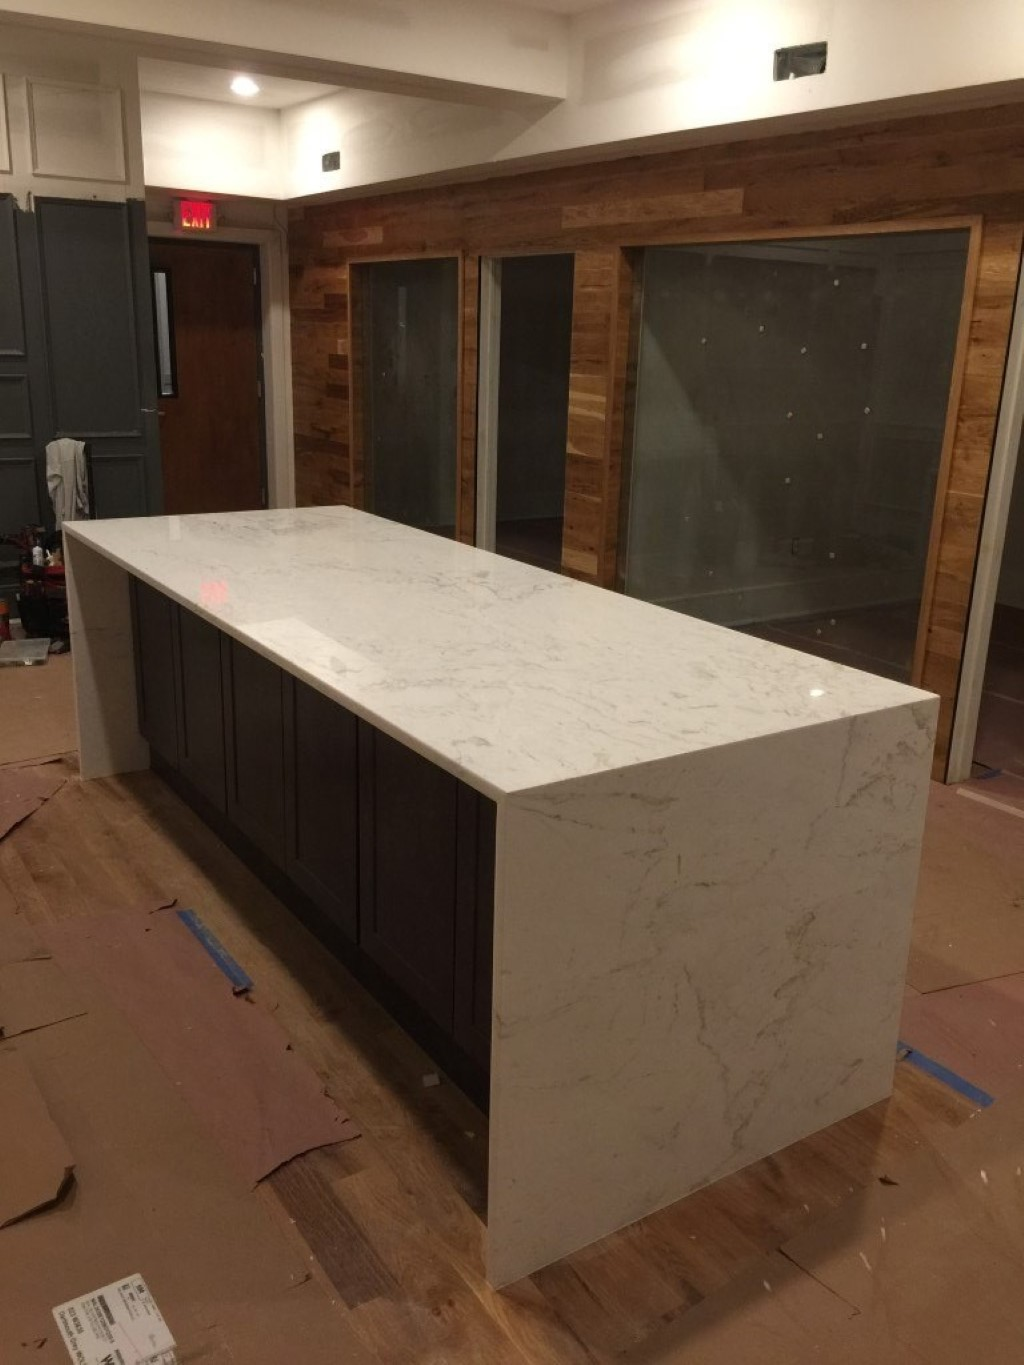 ... Elizabeth New Jersey Kitchen Marble Countertop Project ...